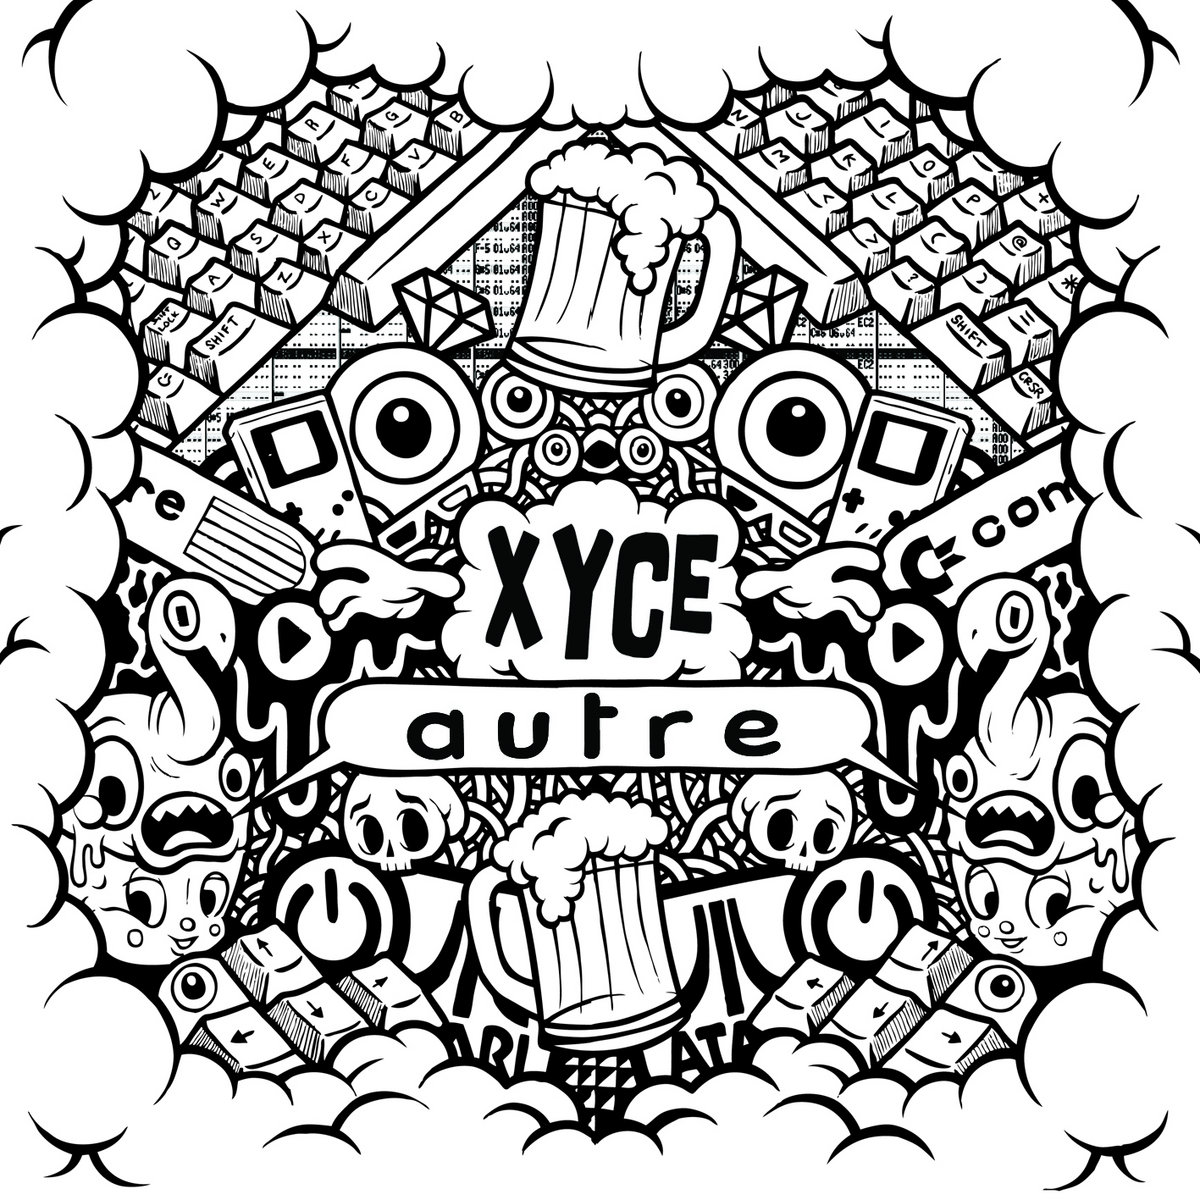 autre by xyce